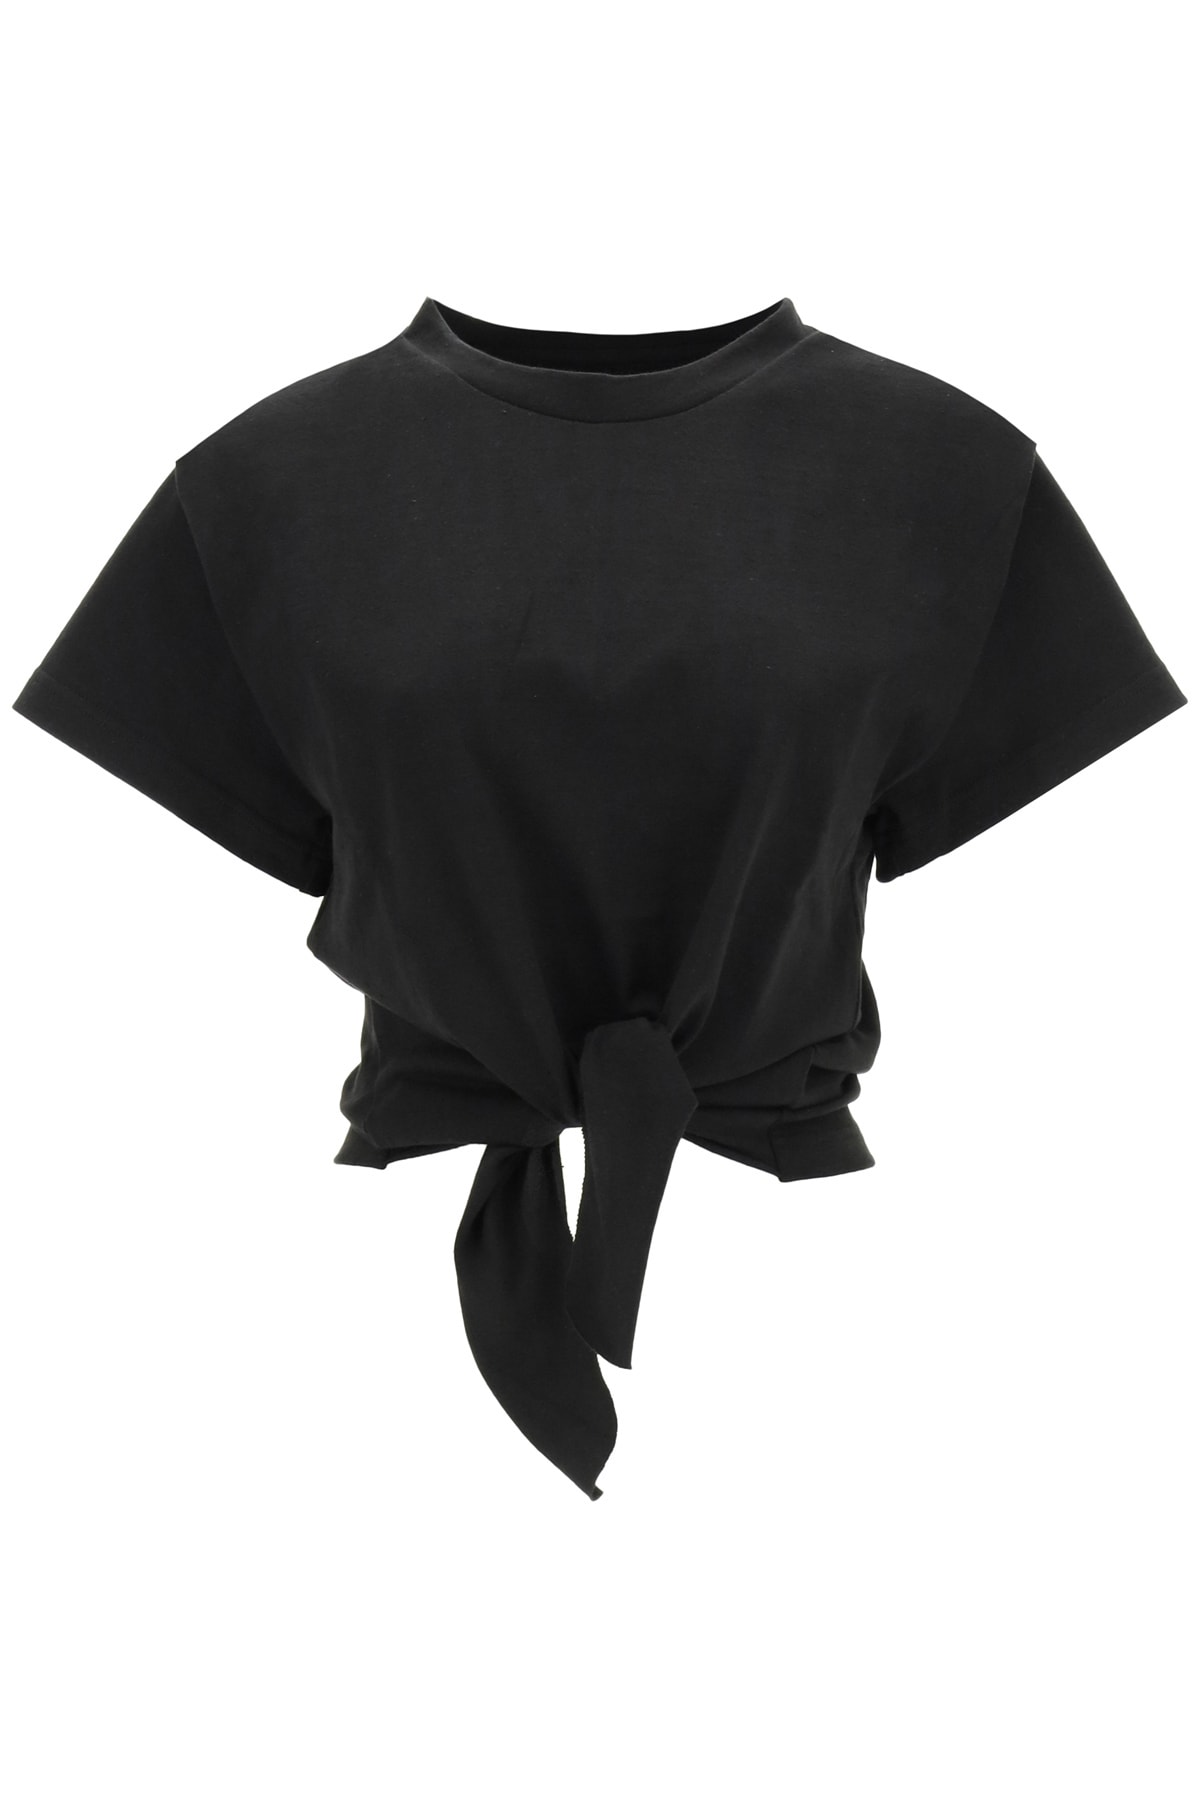 Isabel Marant BELITA T-SHIRT WITH KNOT